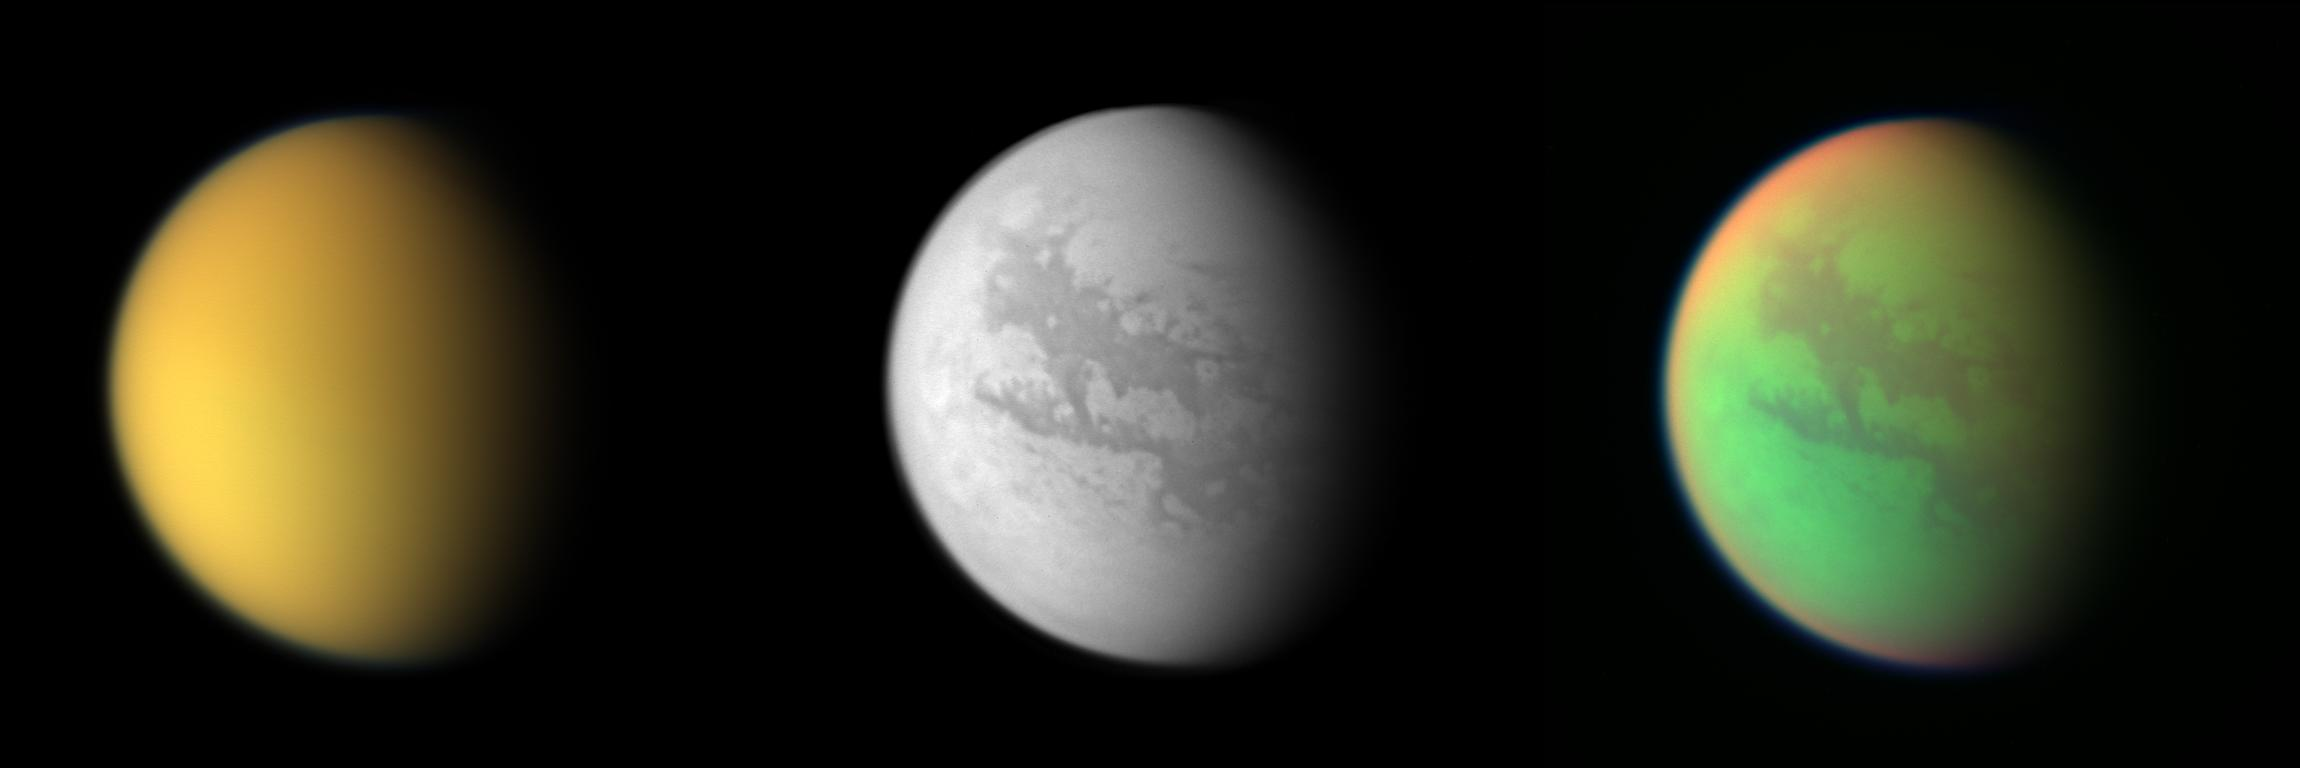 From   NASA  : These three views of Titan from the Cassini spacecraft illustrate how different the same place can look in different wavelengths of light. Cassini's cameras have numerous filters that reveal features above and beneath the shroud of Titan's atmosphere.